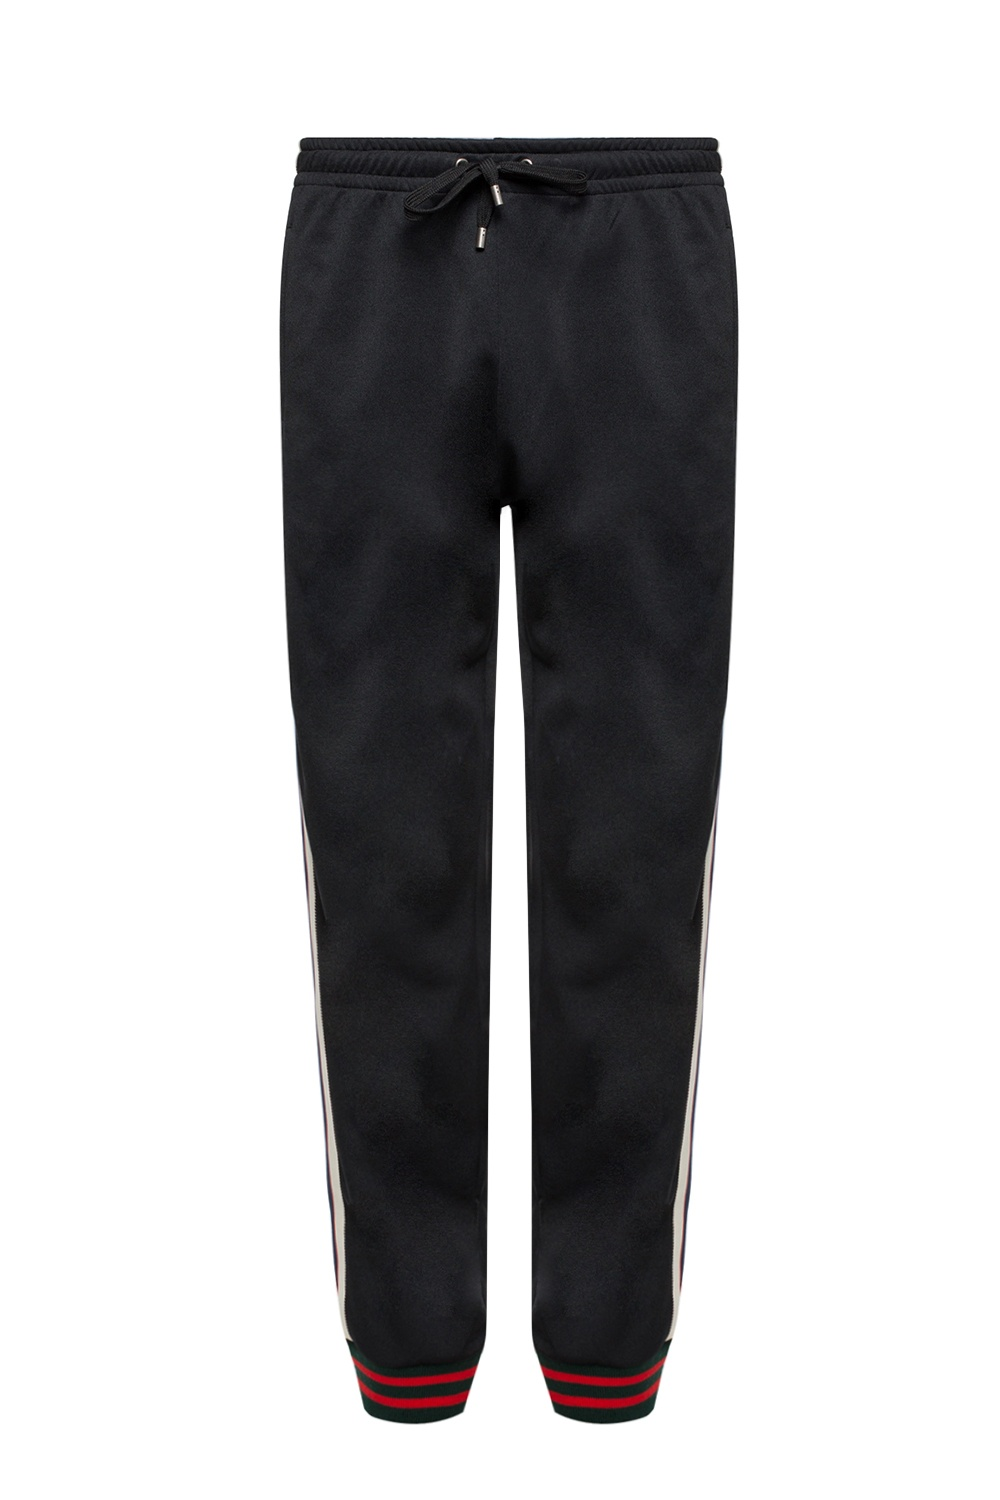 Gucci Sweatpants with logo